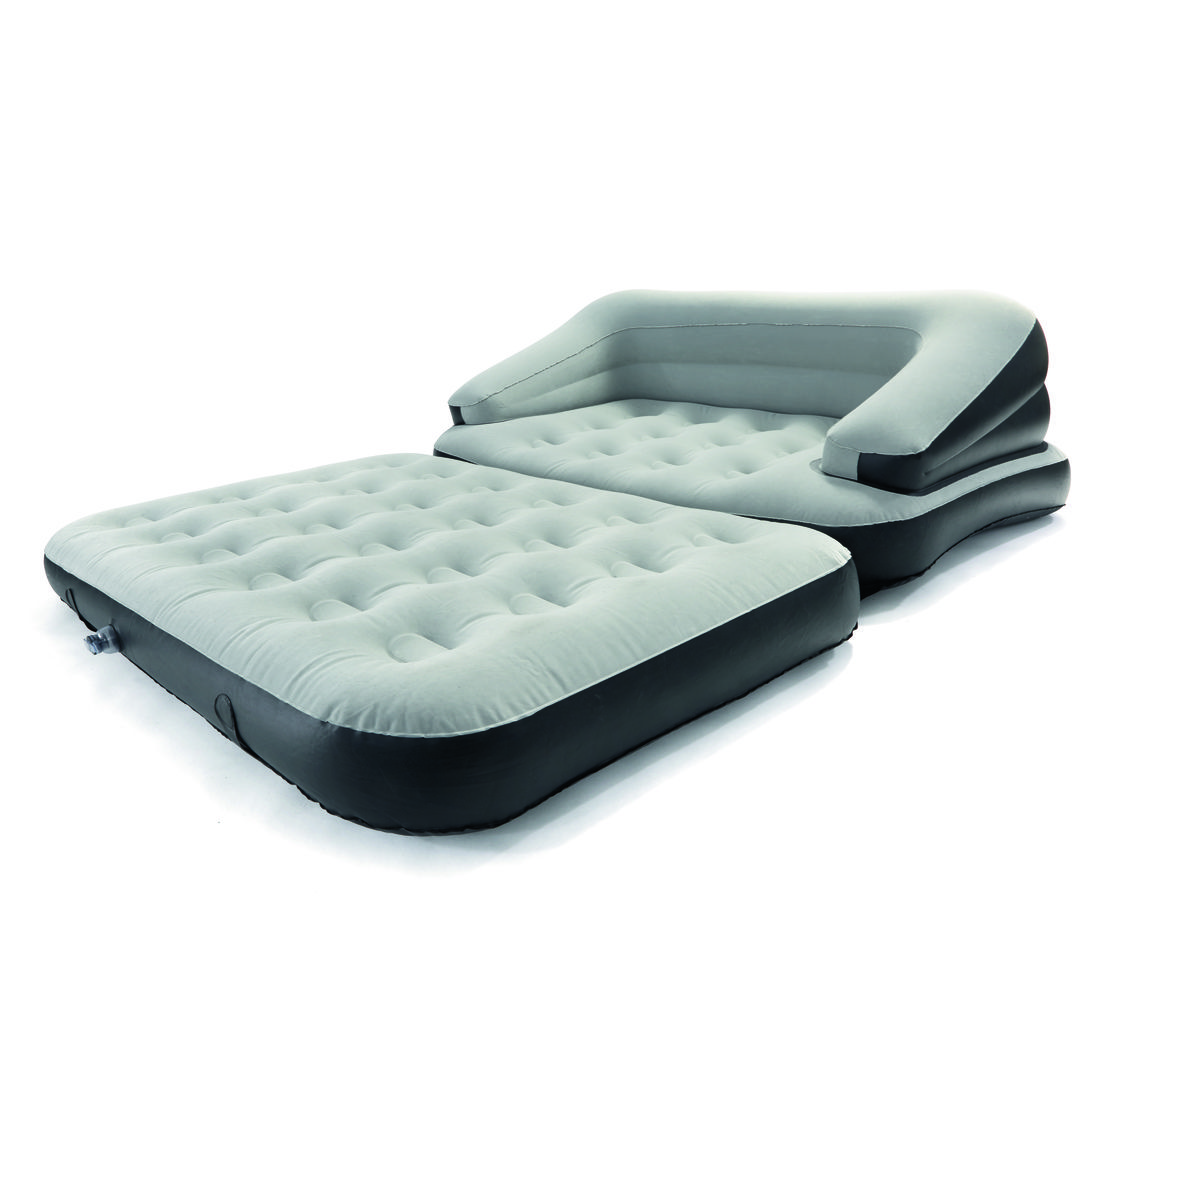 Multi Functional Sofa - Double Bed, Charcoal | Kmart